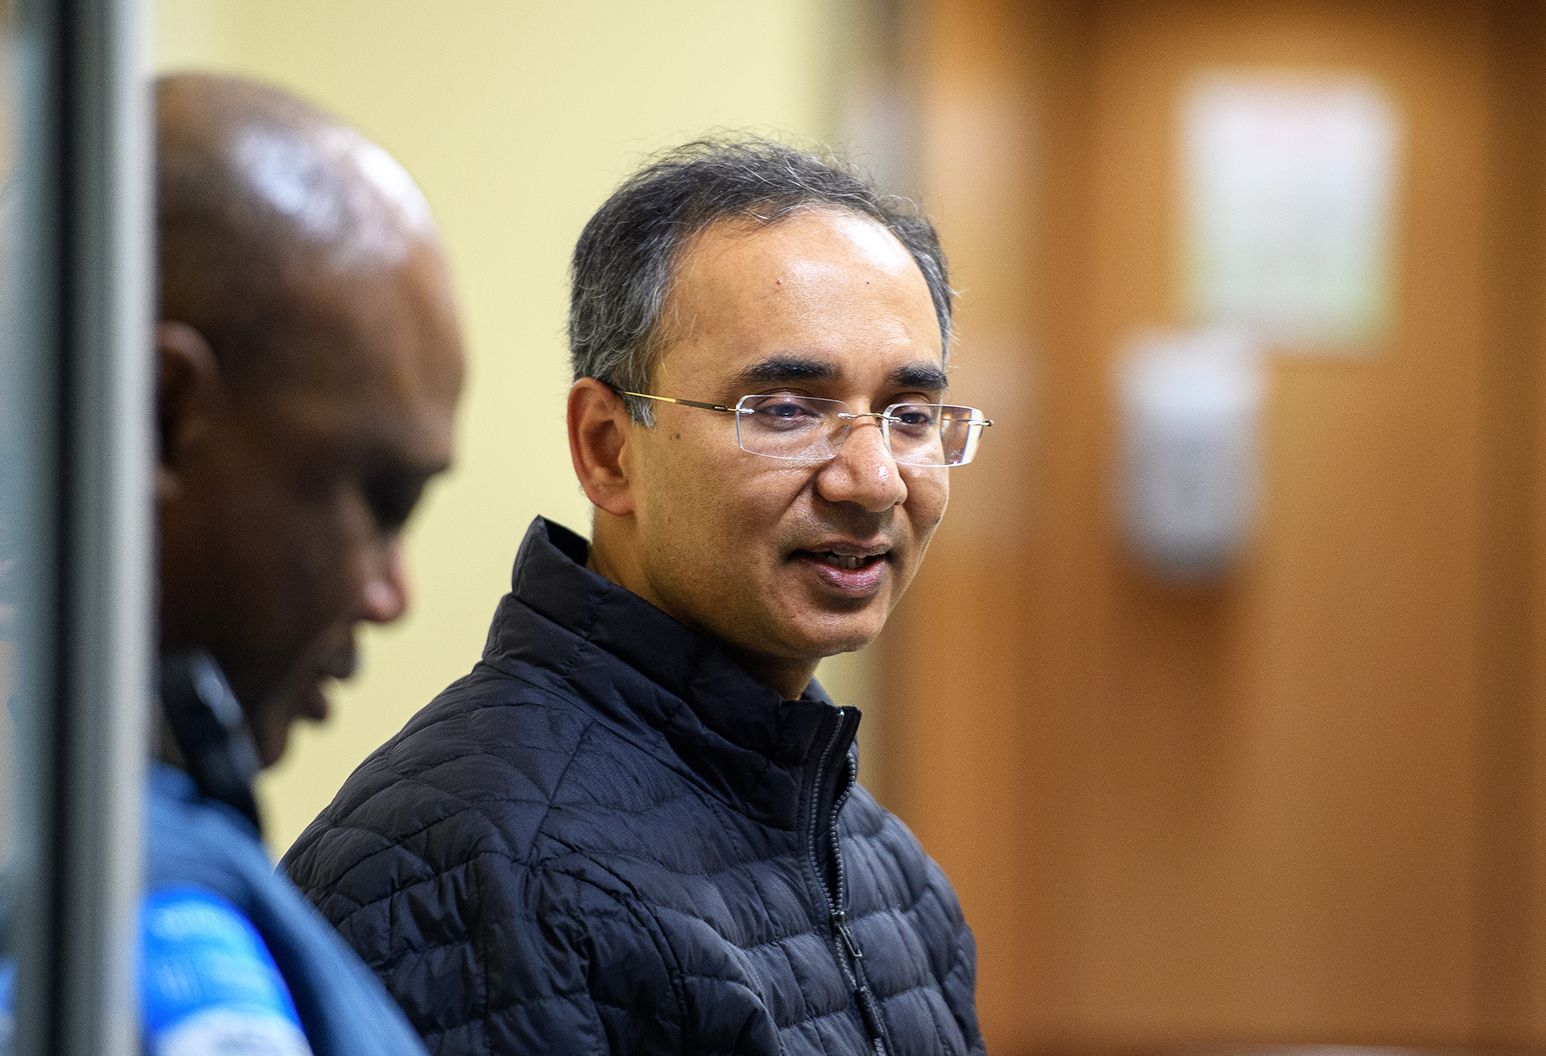 One man is smiling and wearing glasses and a blue jacket. Another man is half in the frame and also wears a blue jacket.